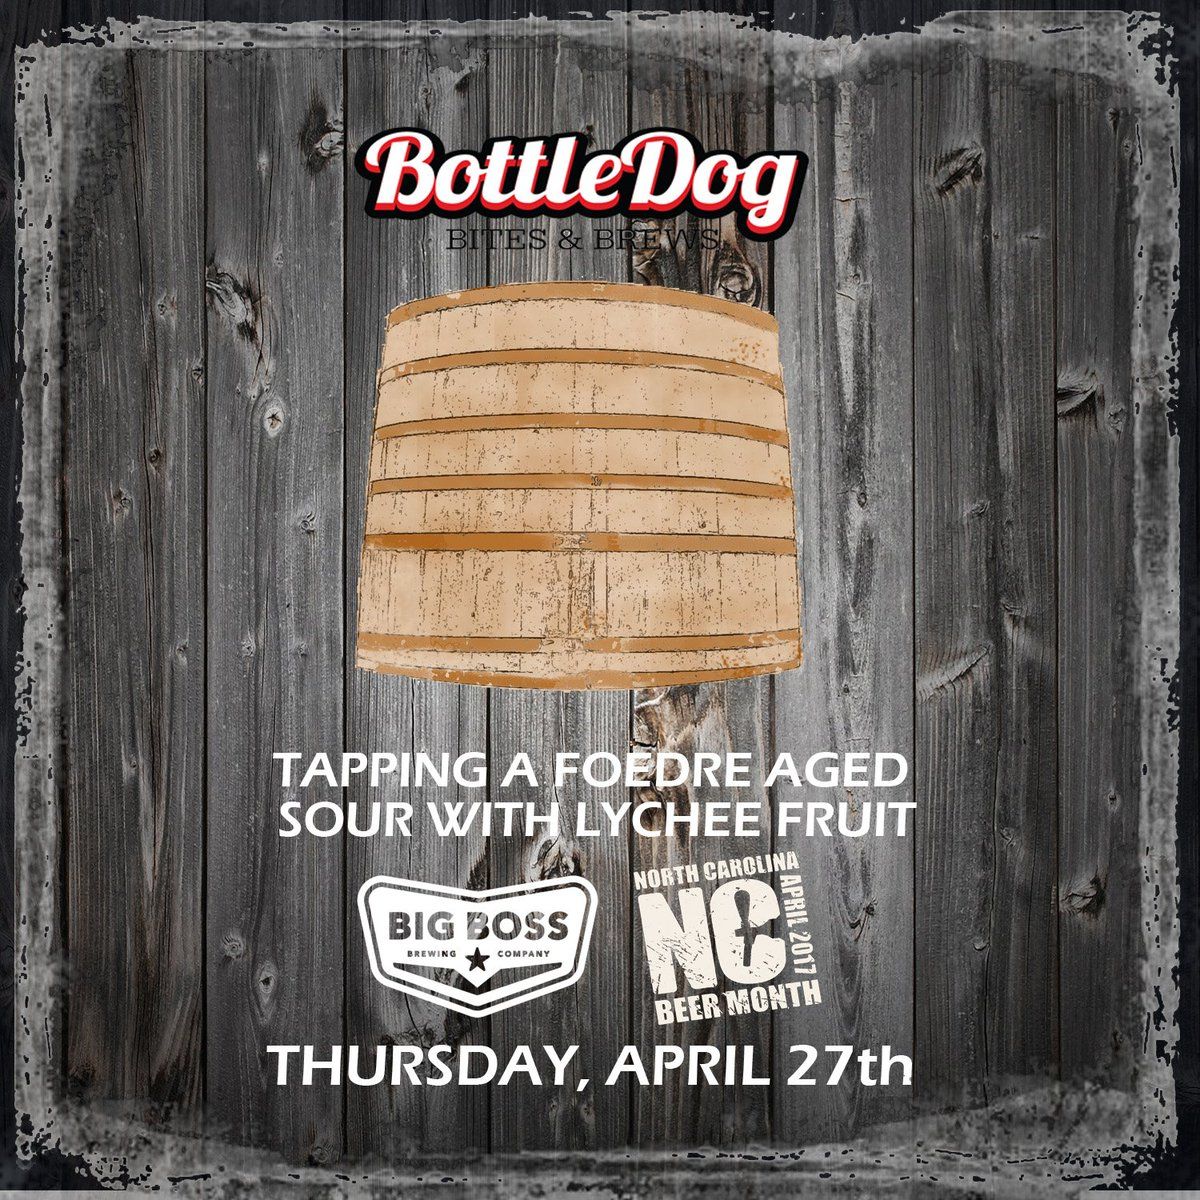 Join us Thursday 4/27 @DottleDogCary as we host @bigbossbeer and this special cask @NCBeerMonth @WRALOutandAbout #youredoinggreat #poutine <br>http://pic.twitter.com/7dWcFLq89t